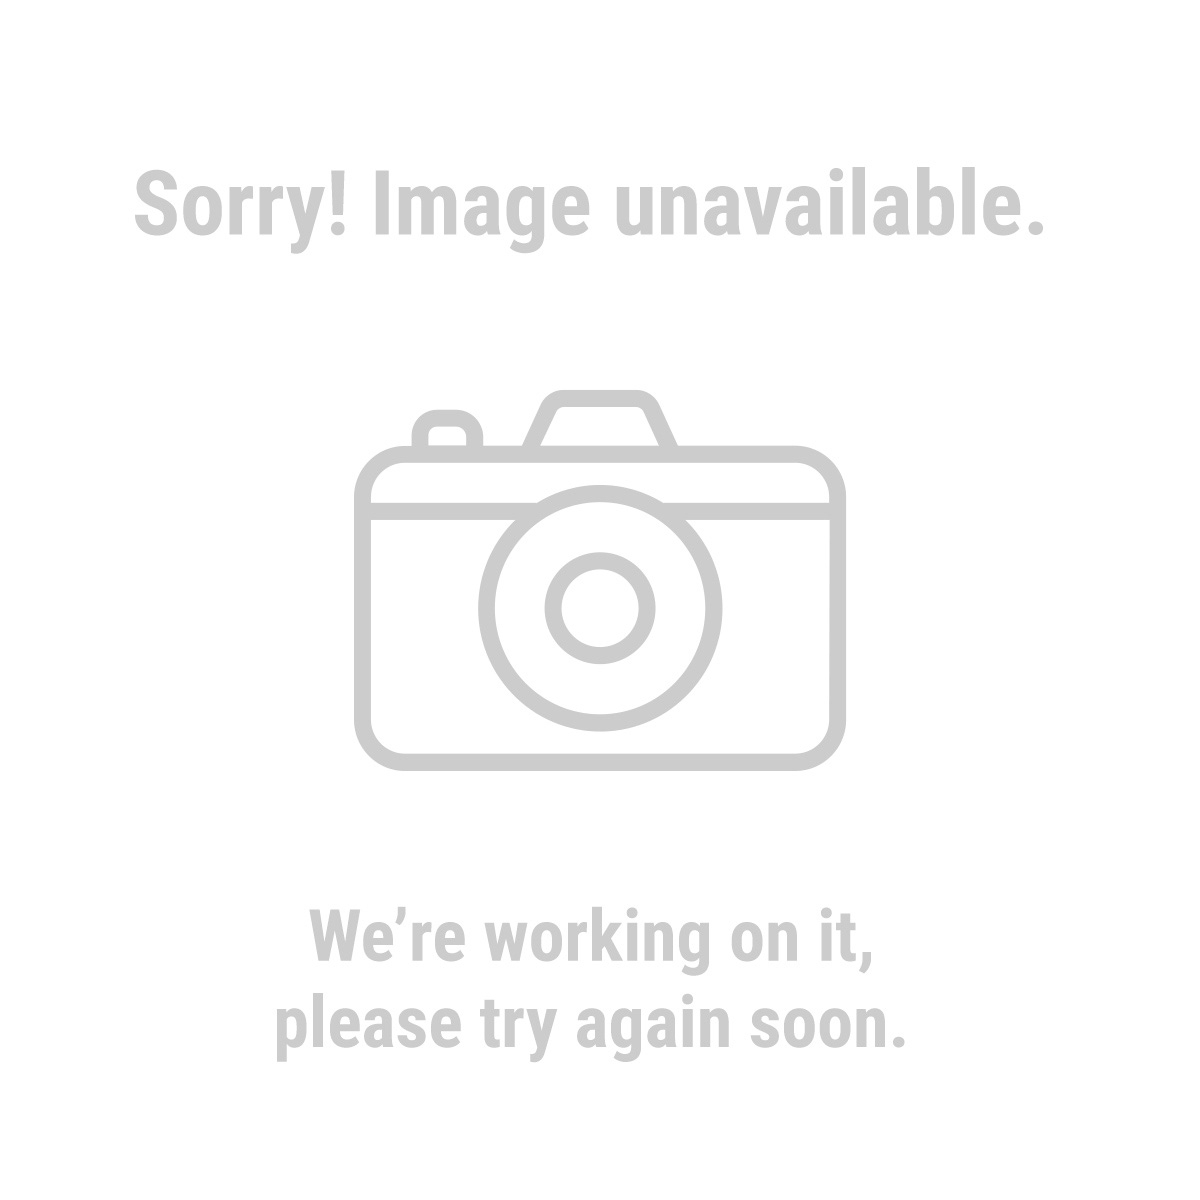 Greenwood® 63036 4 gal. Backpack Sprayer